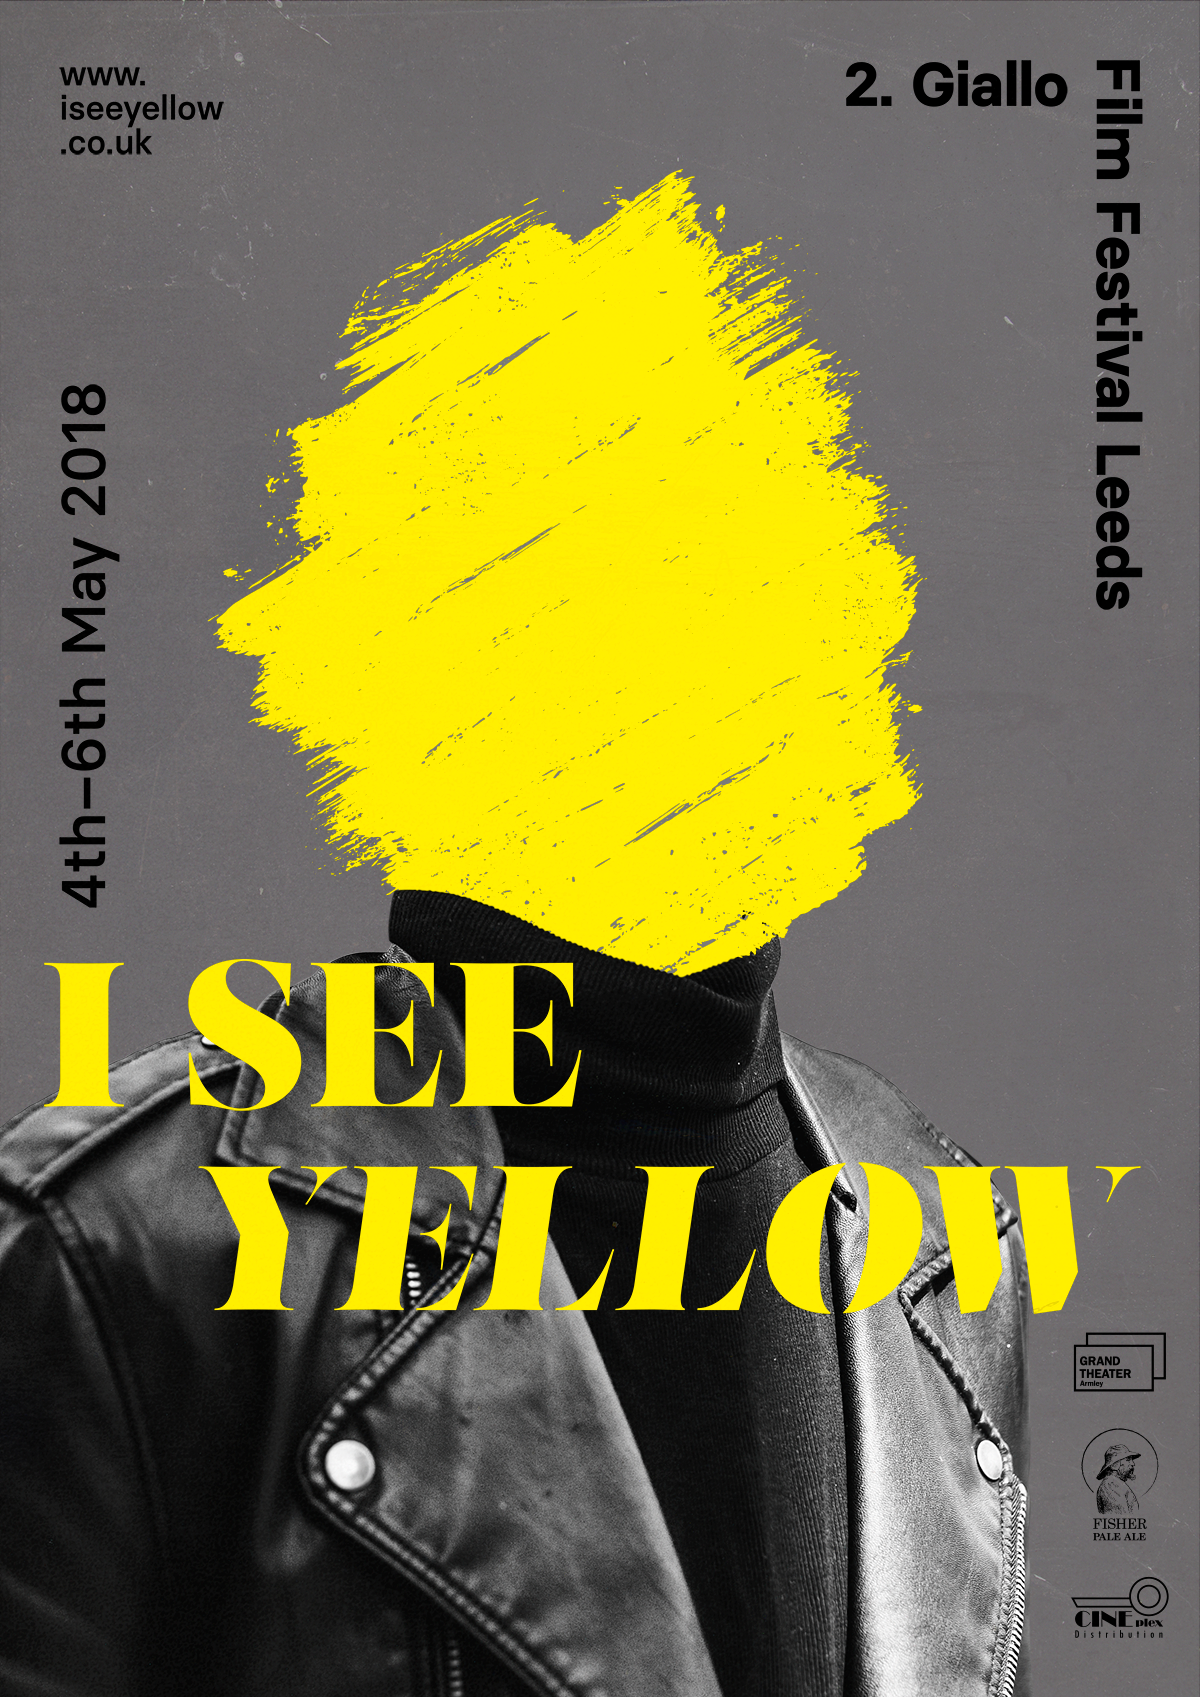 Film festival i see yellow poster 04